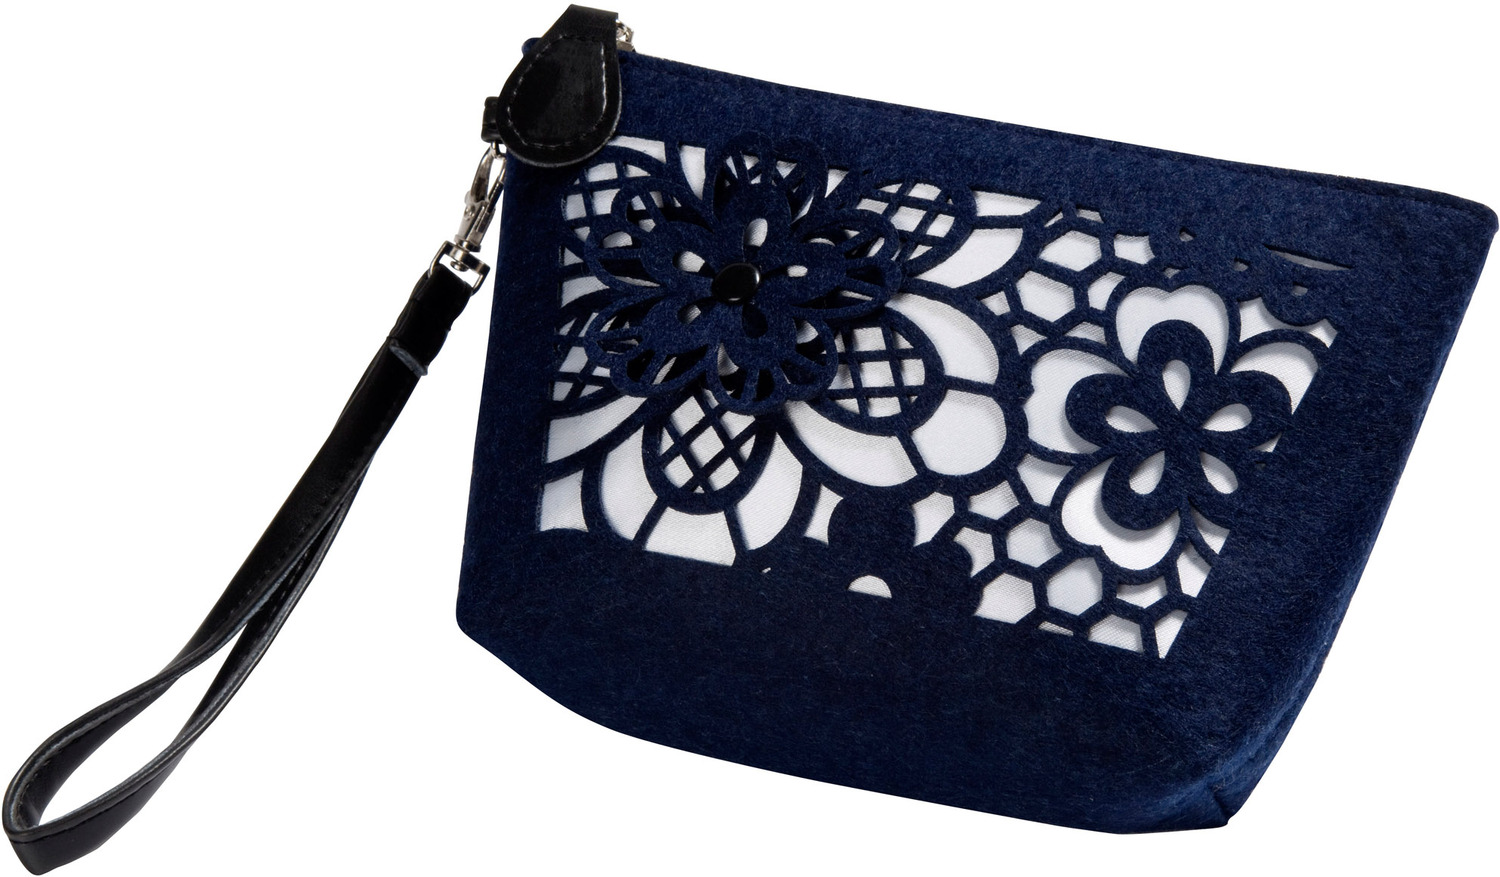 "Navy and Ivory by H2Z Felt Accessories - Navy and Ivory - 8"" x 2.5"" x 5"" Bag"